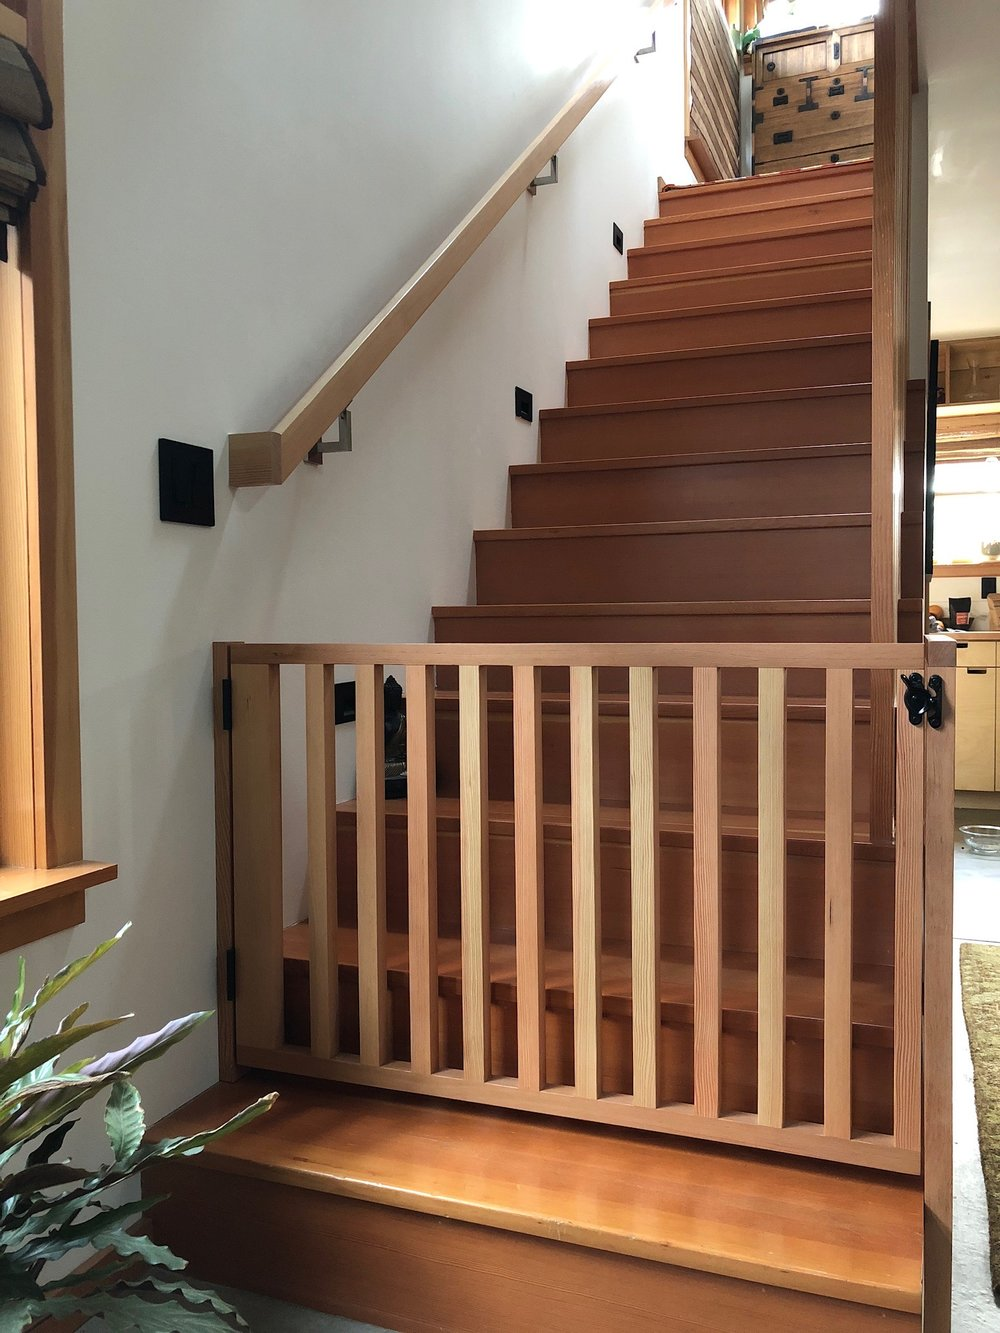 The gate is made of fir to match the existing trim throughout the home. It was installed without having to drill into the wood -- just a few fasteners into the drywall that can easily be patched over when the gate is no longer necessary.